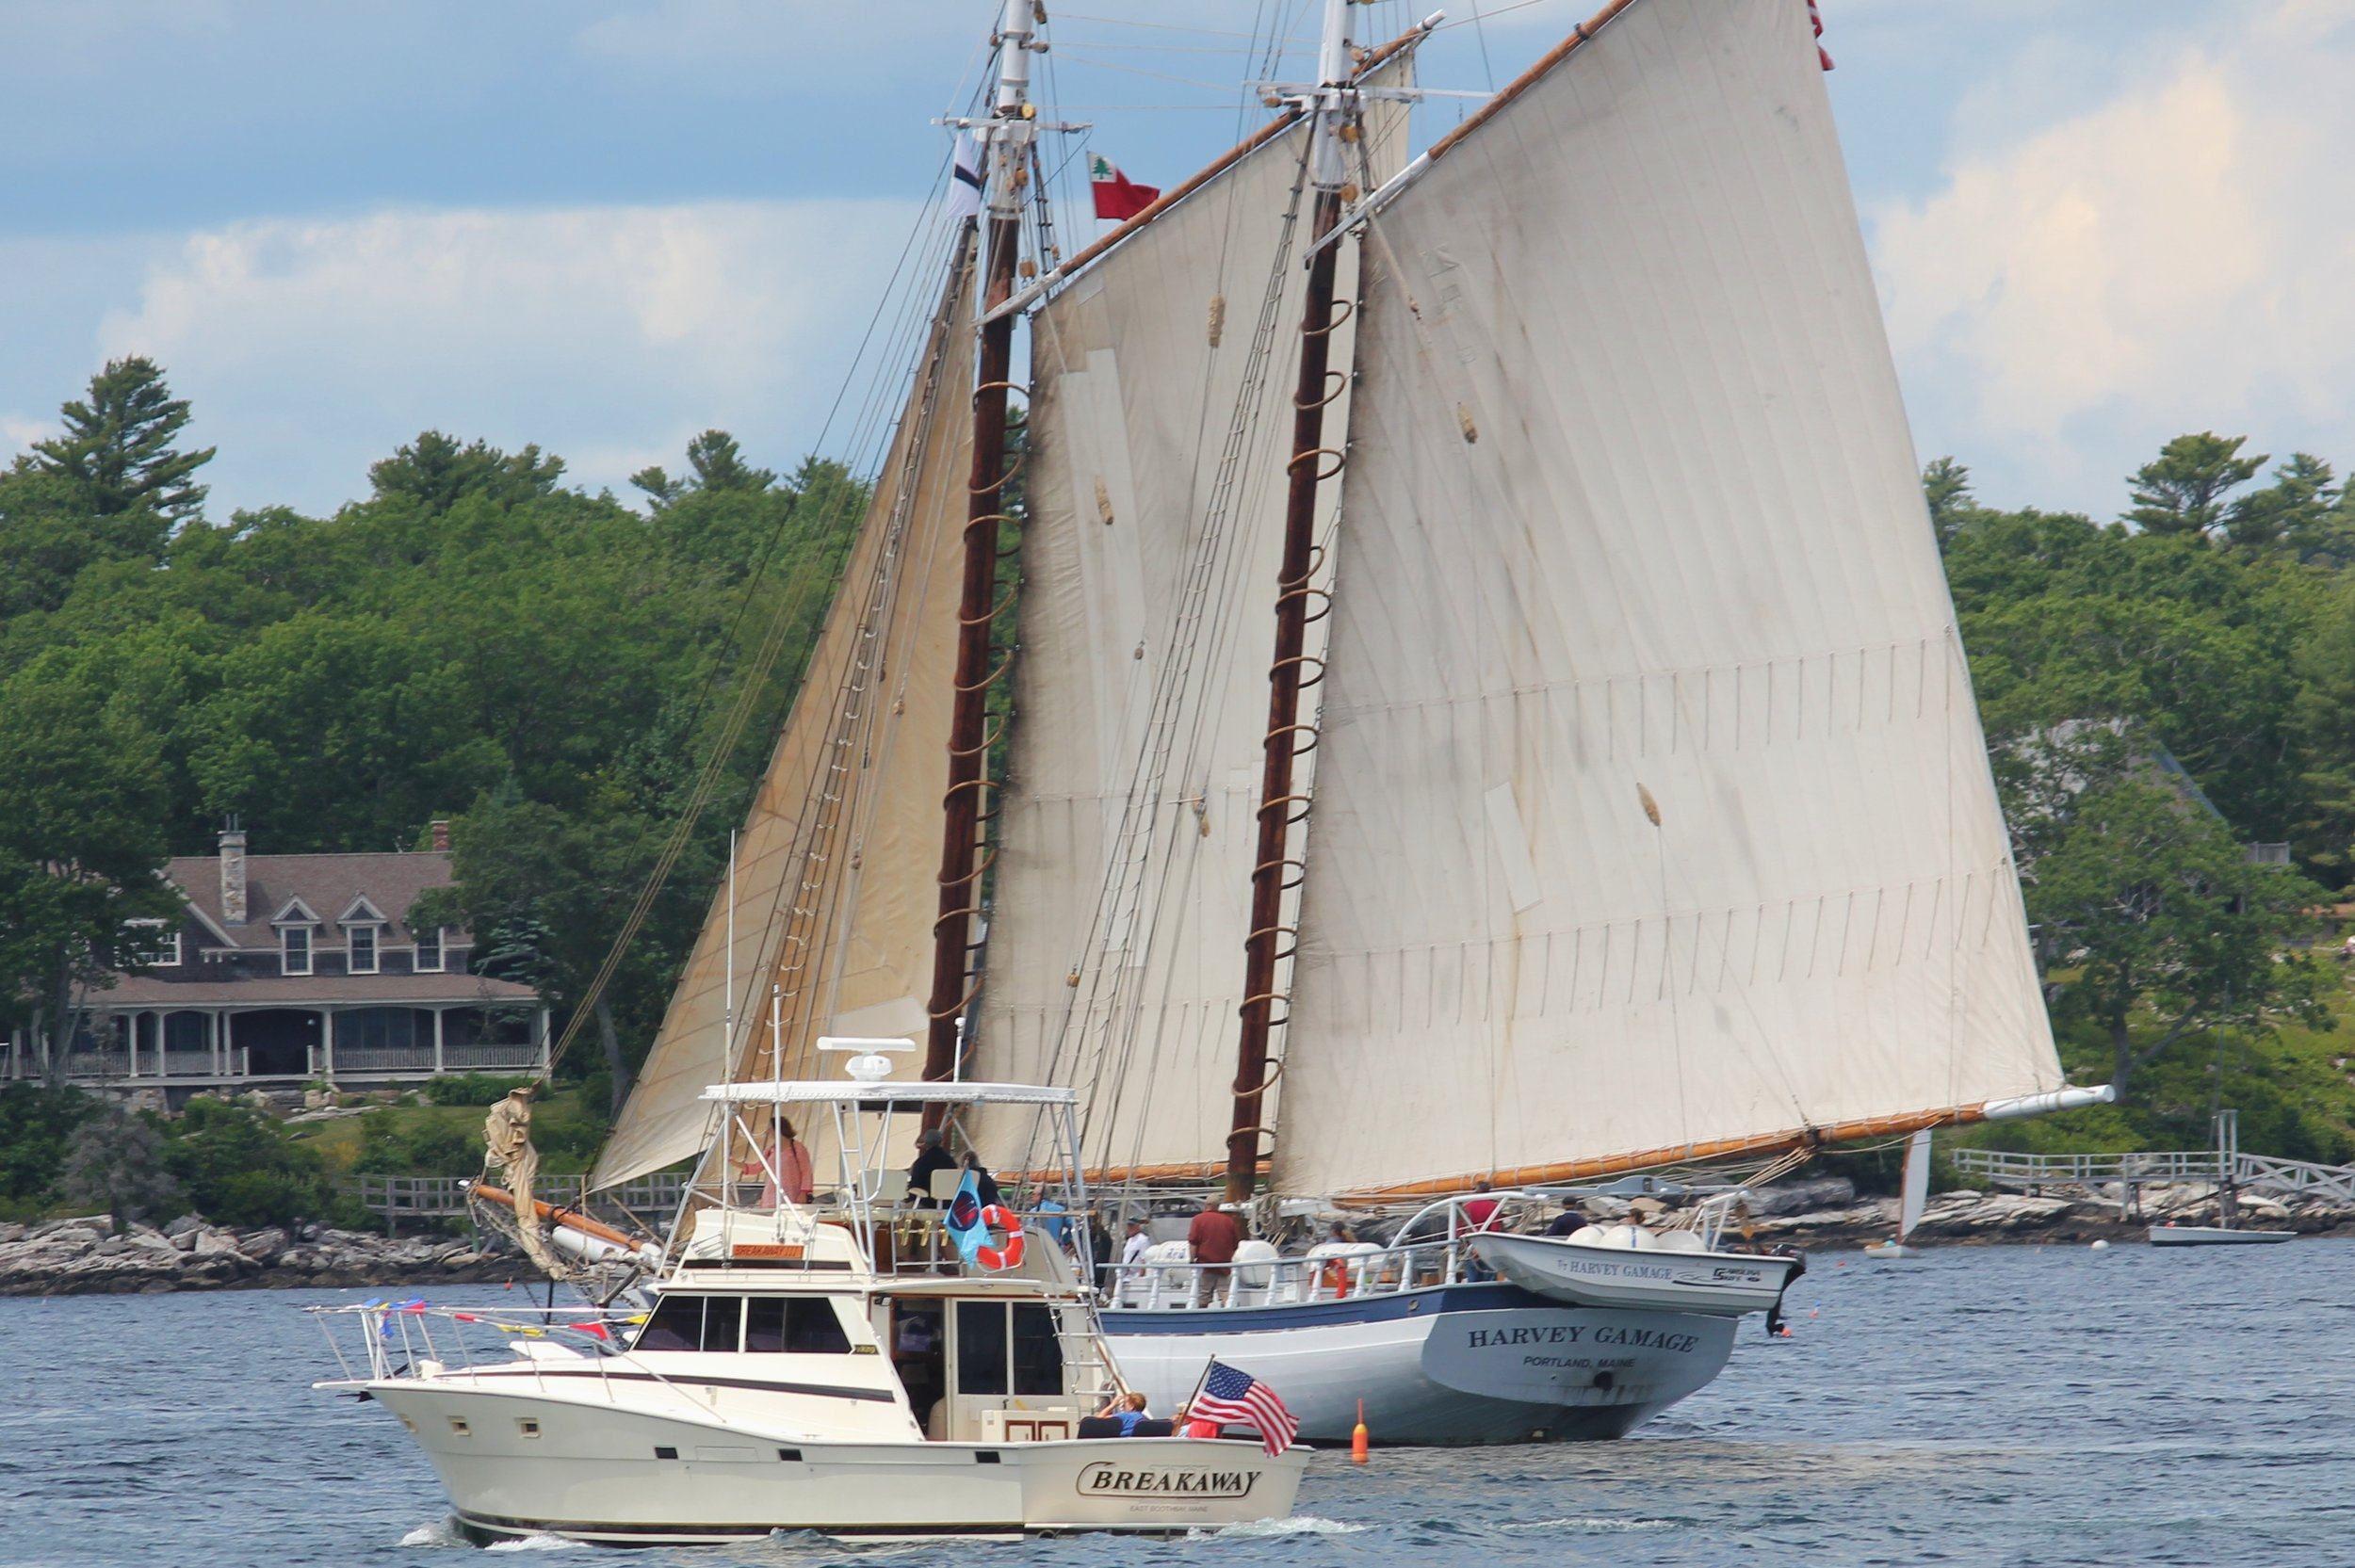 Schooner Harvey Gamage